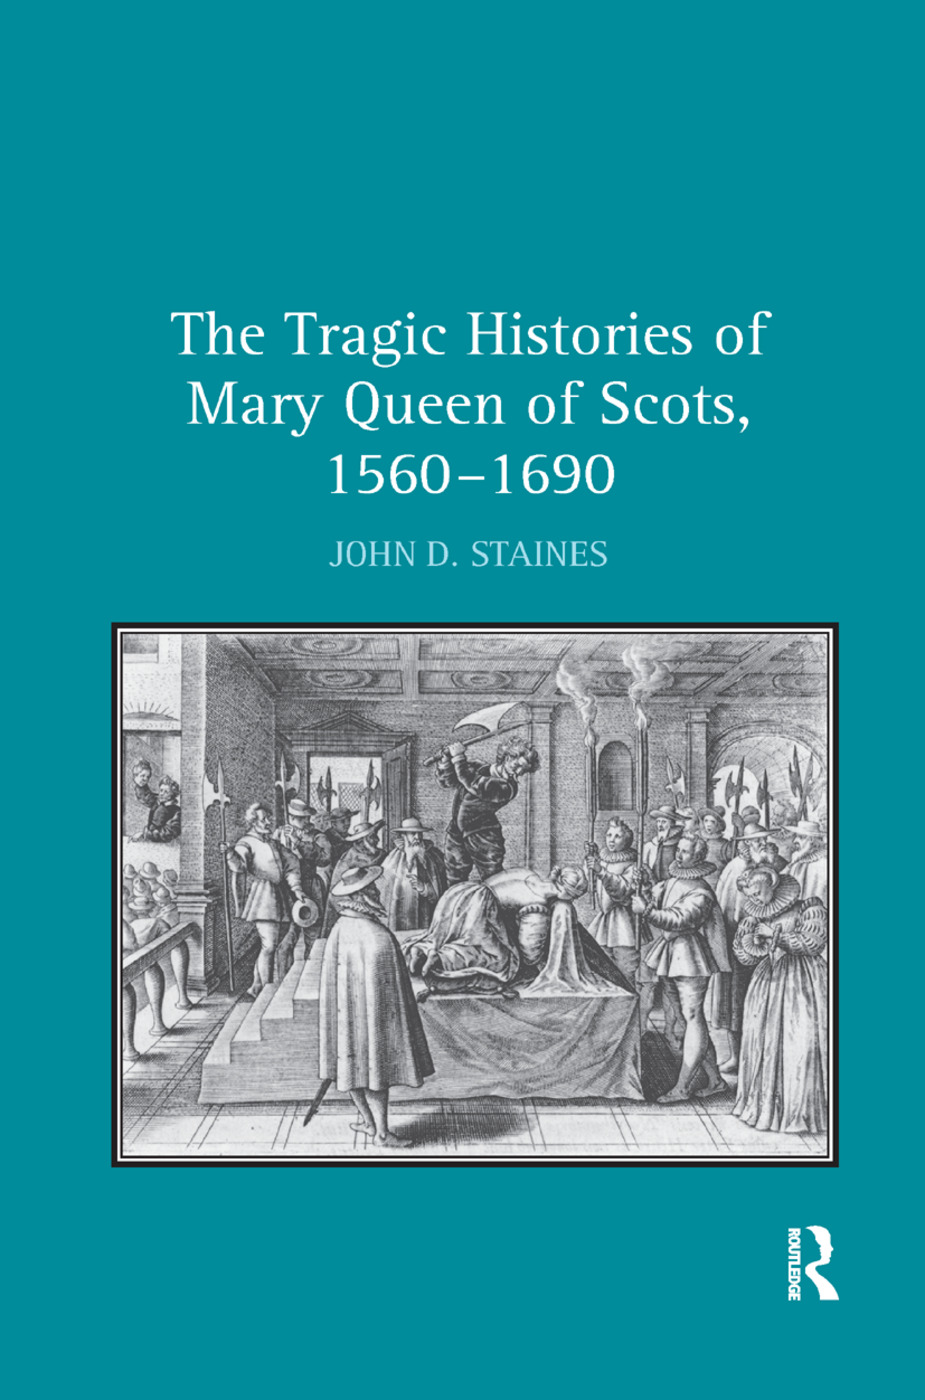 The Tragic Histories of Mary Queen of Scots, 1560-1690: Rhetoric, Passions and Political Literature, 1st Edition (Paperback) book cover